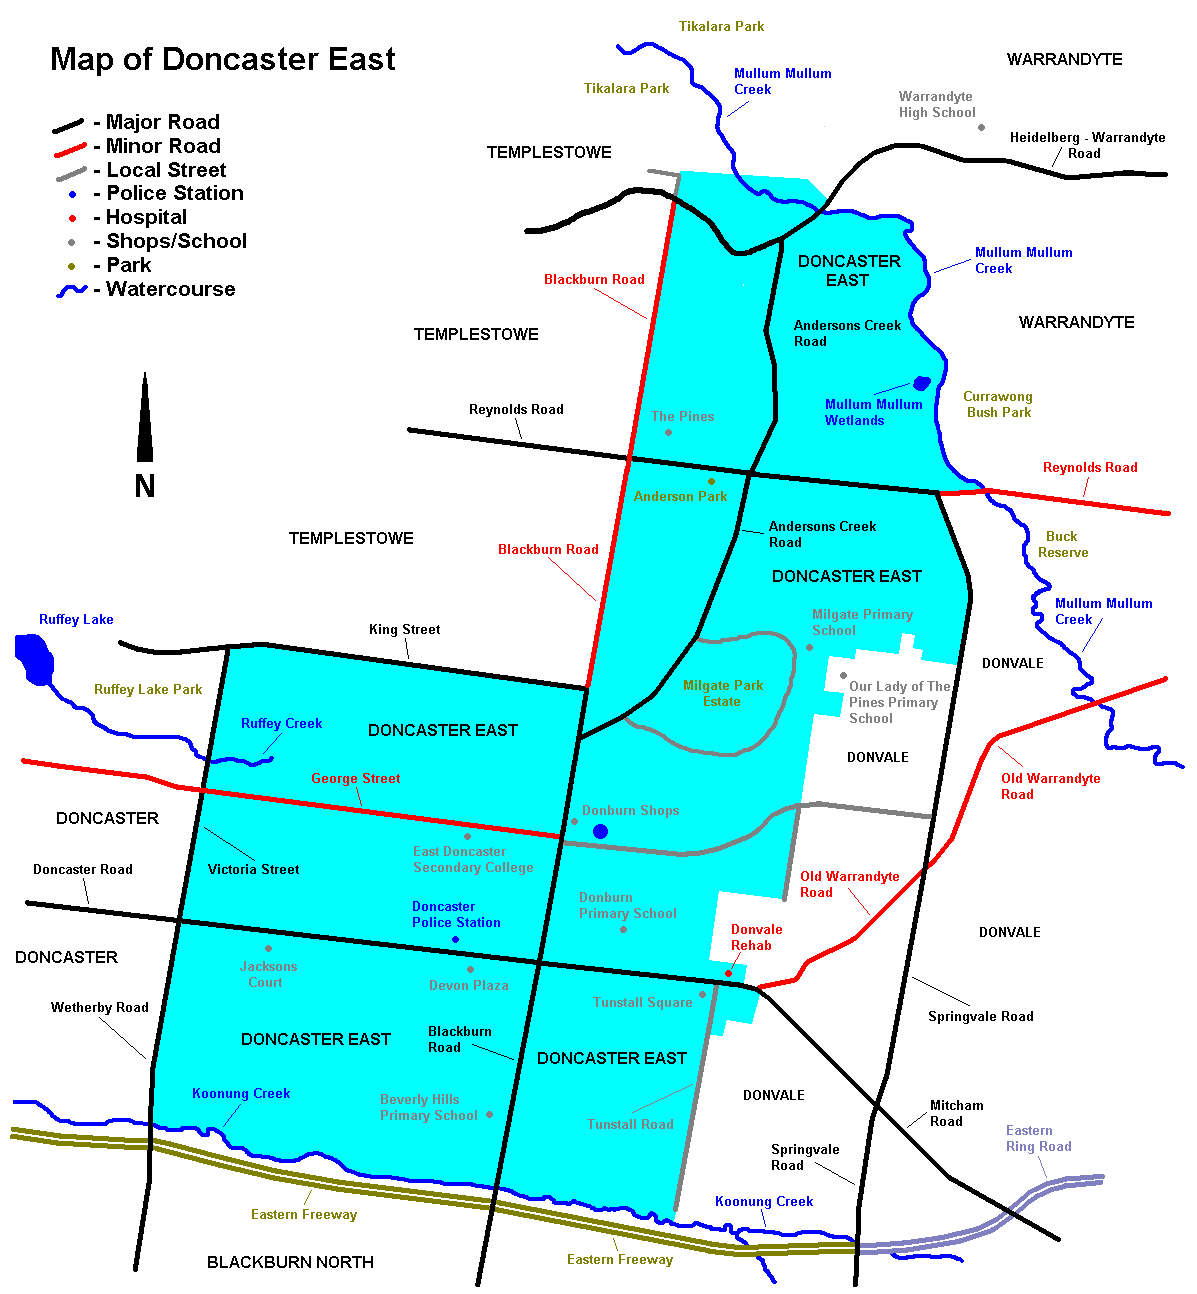 File:Doncaster east map.PNG - Wikimedia Commons